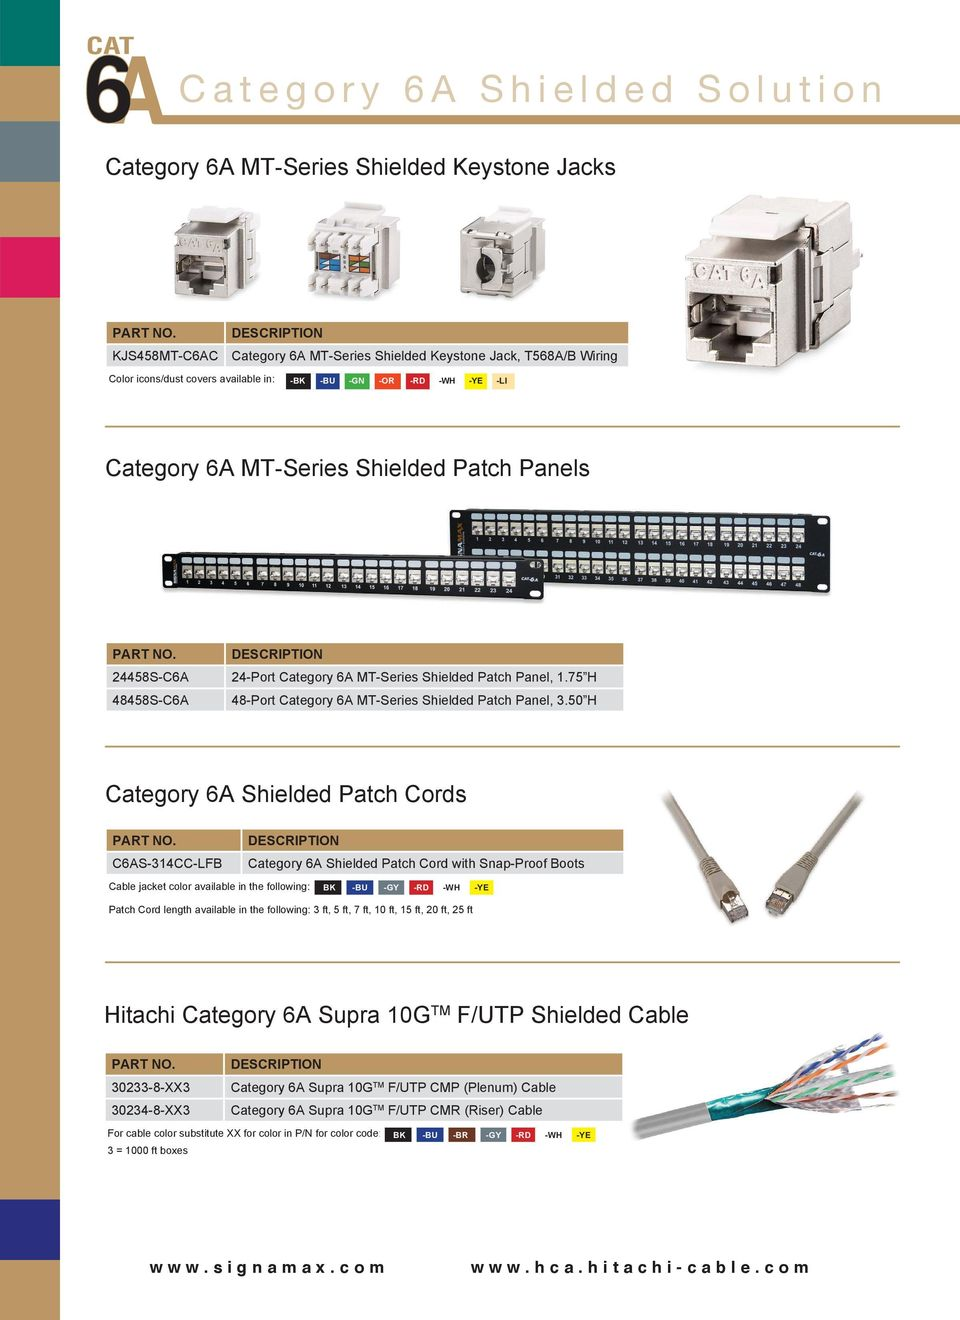 75 H 48-Port Category 6A MT-Series Shielded Patch Panel, 3.